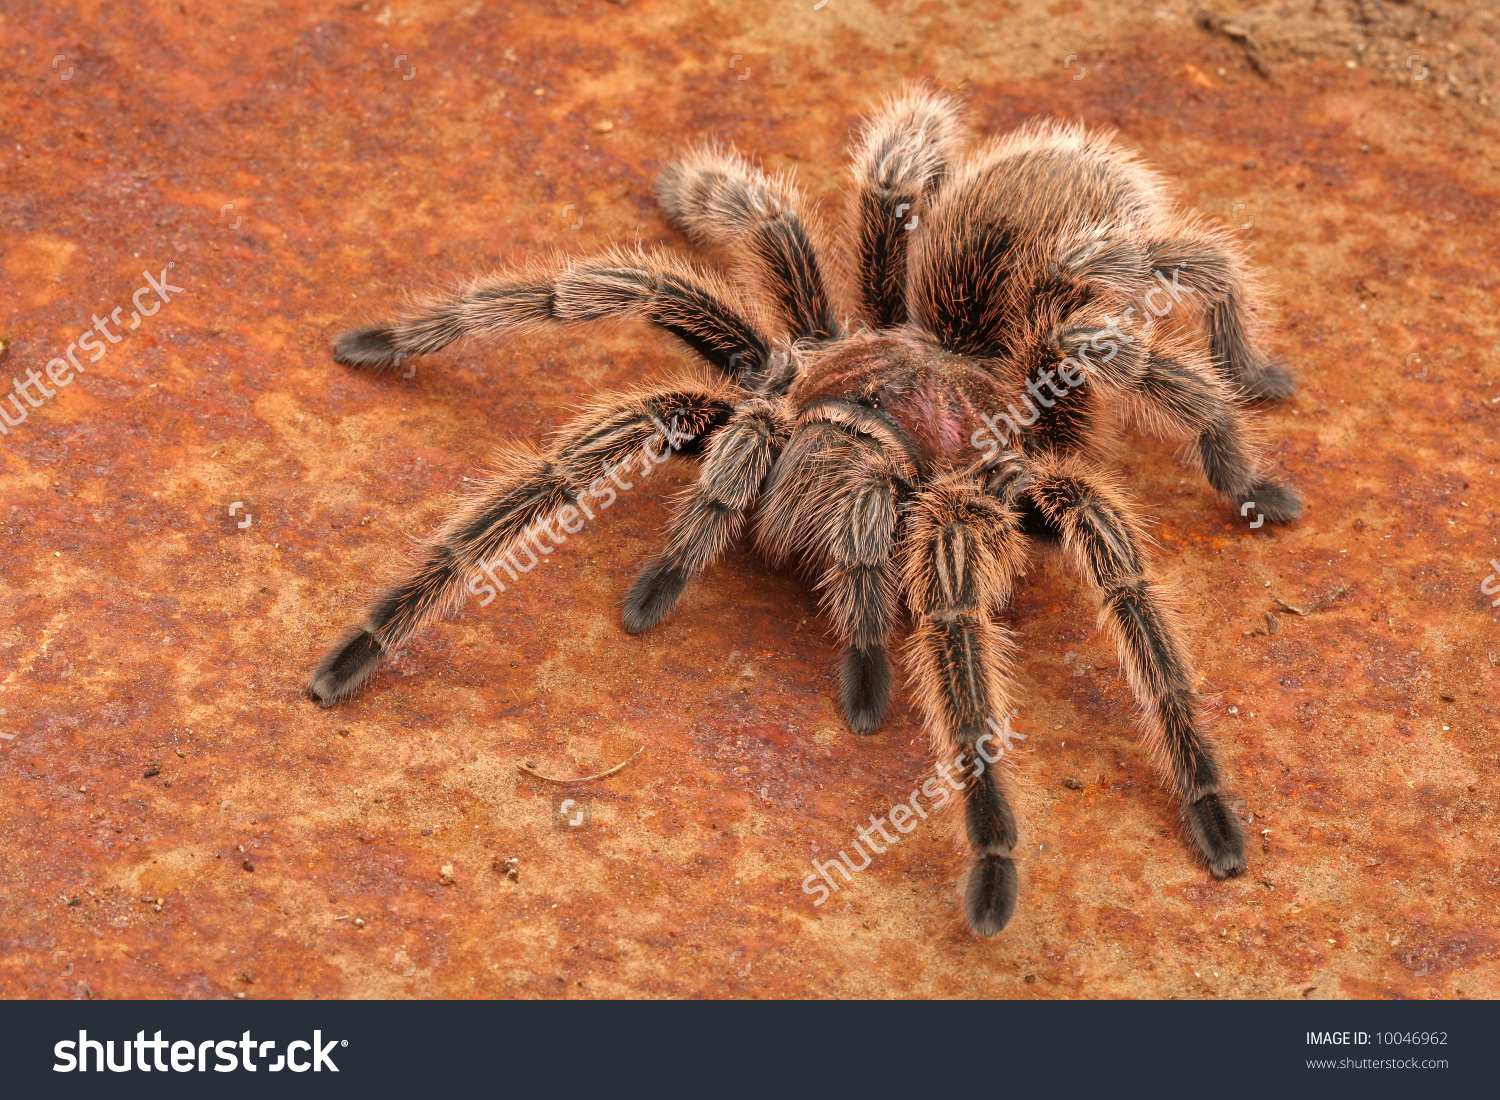 Chilean Rose Tarantula clipart #3, Download drawings